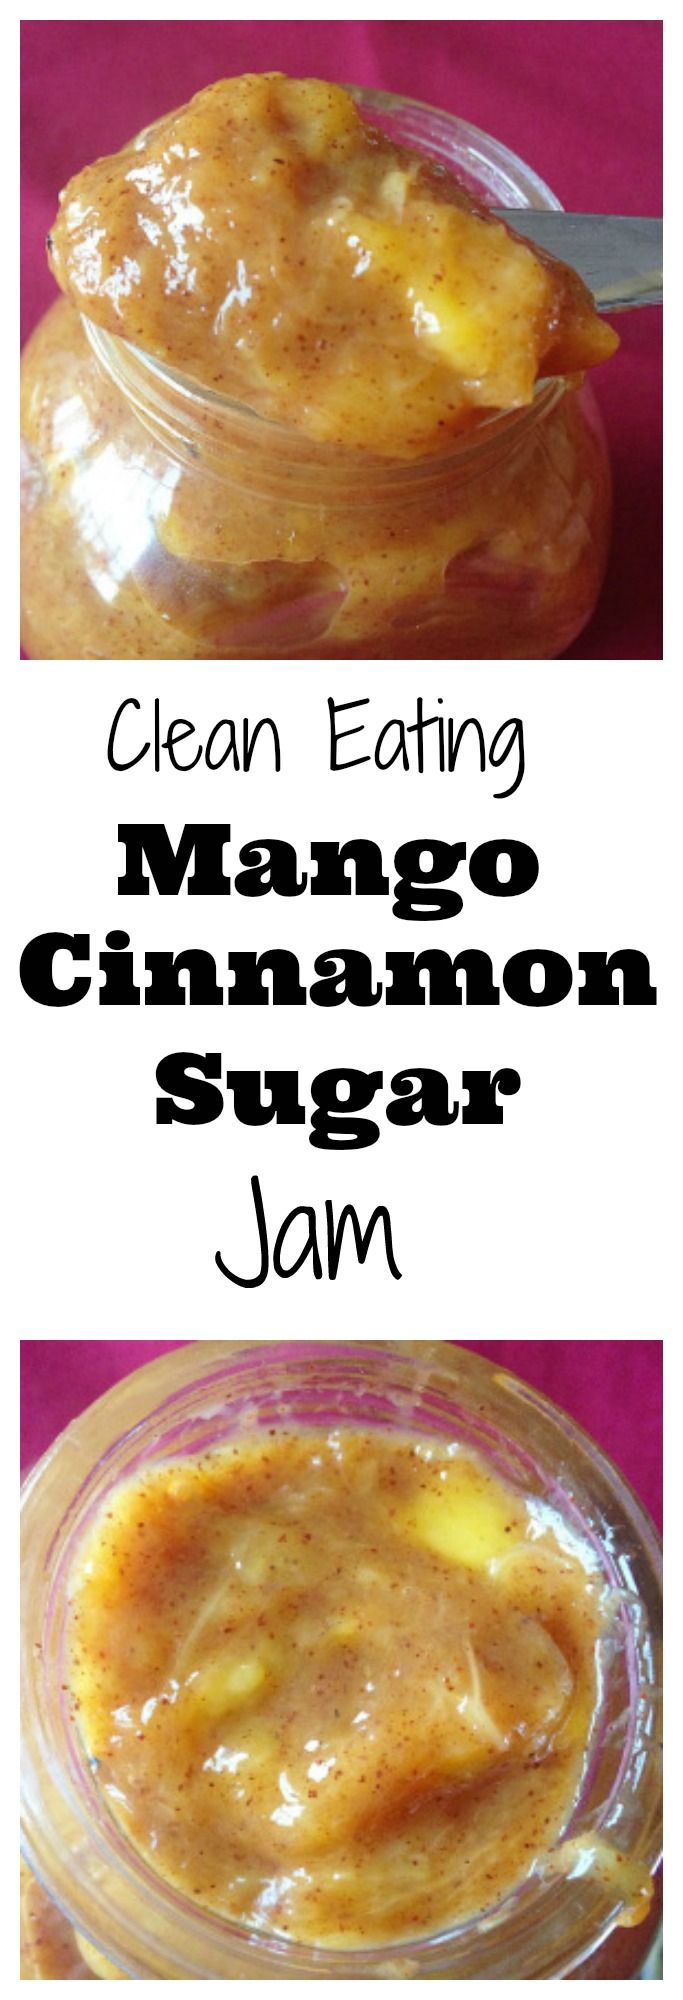 Mango Cinnamon-Sugar Jam! The perfect spread on toast, waffles, pancakes, ice cream, yogurt, you name it!